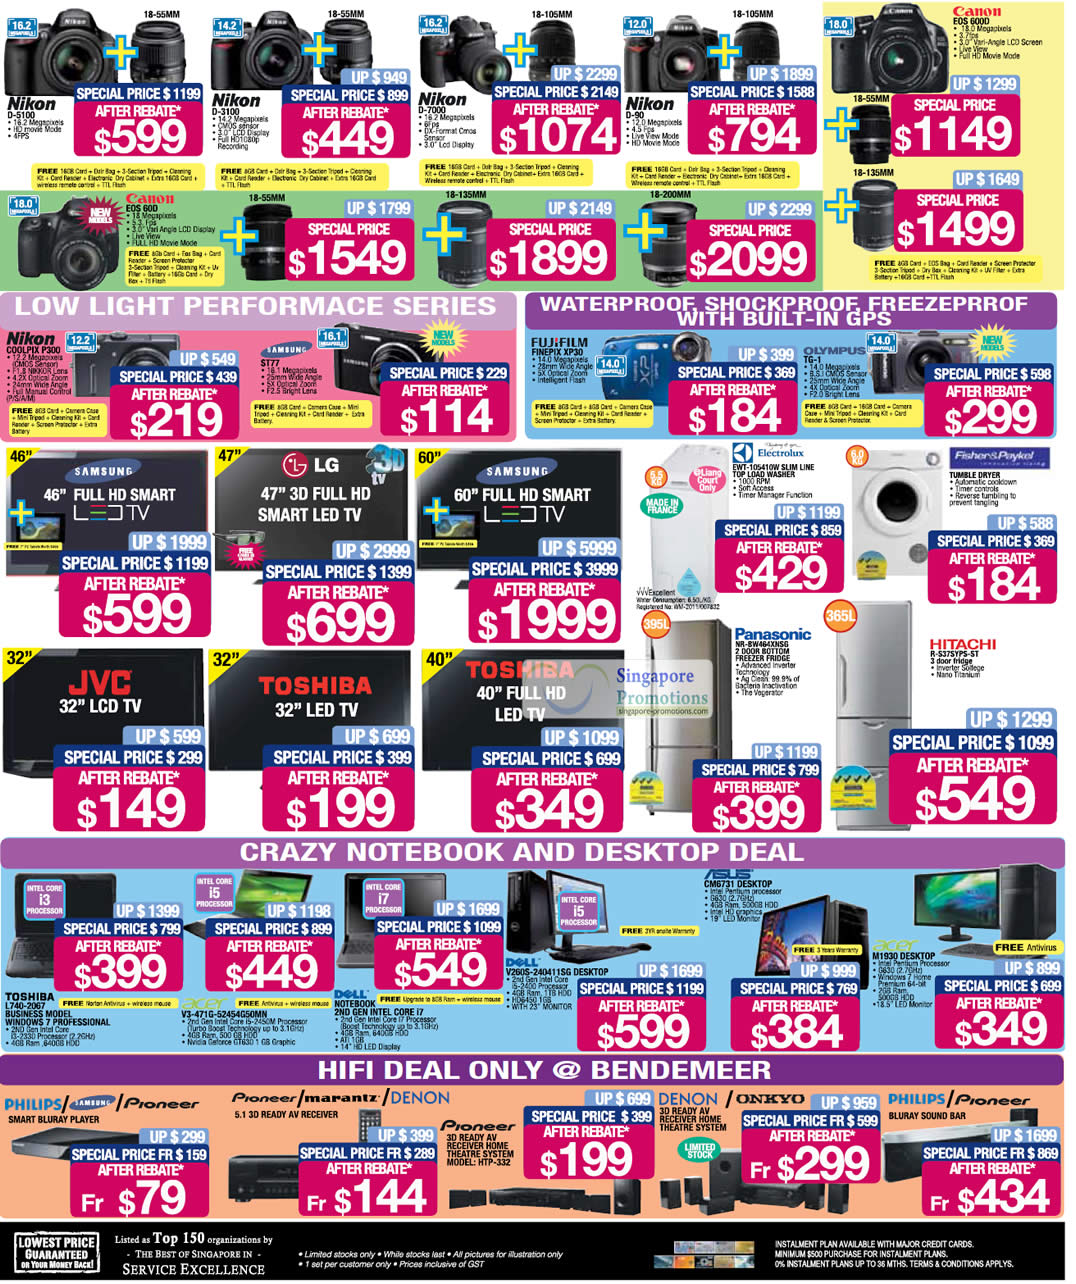 Digital Cameras, LED TVs, Washers, Fridges, Notebooks, Hifi, Canon, Pioneer, Samsung, Philips, LG, Electrolux, Fisher and Paykel, Hitachi, Nikon, Dell, Asus,Acer